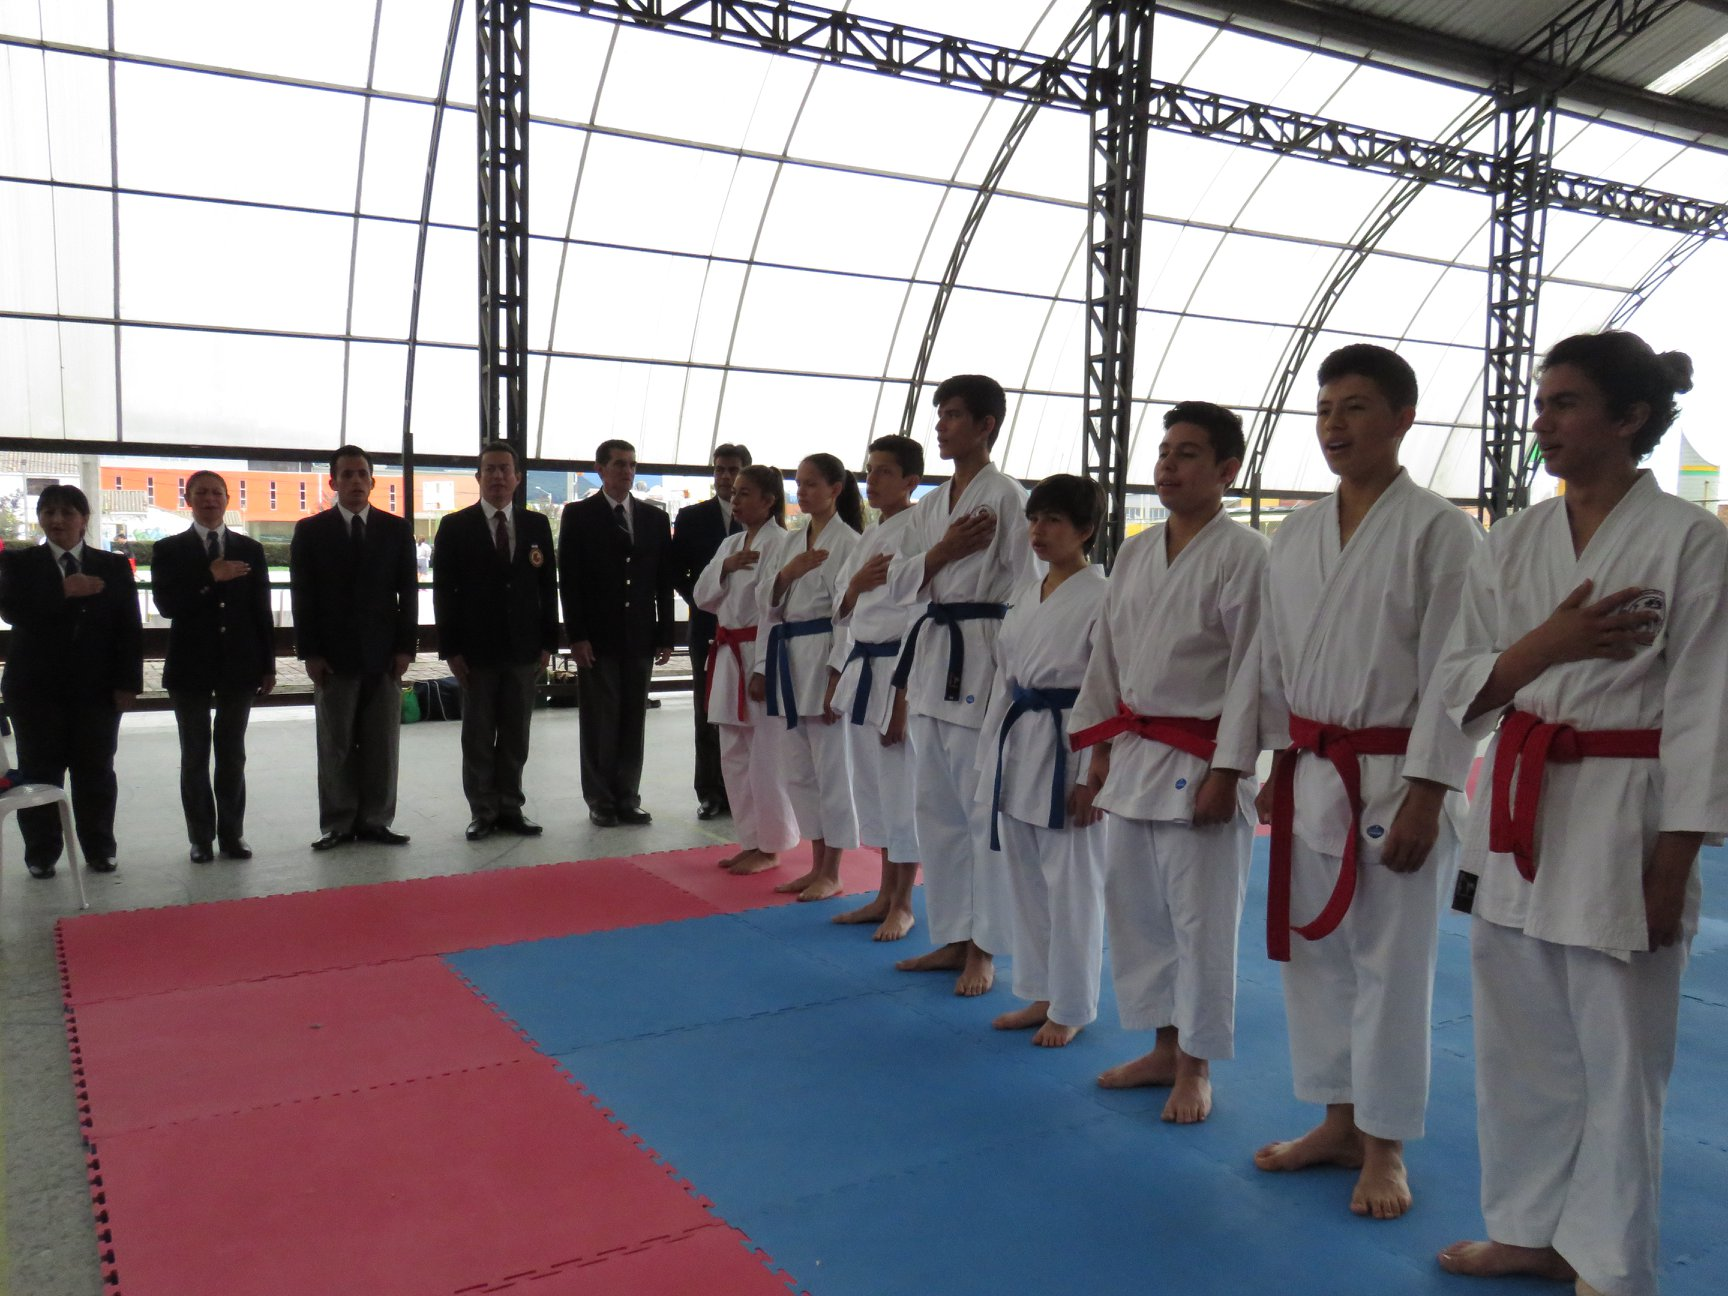 KARATE INTERCOLEGIADOS3